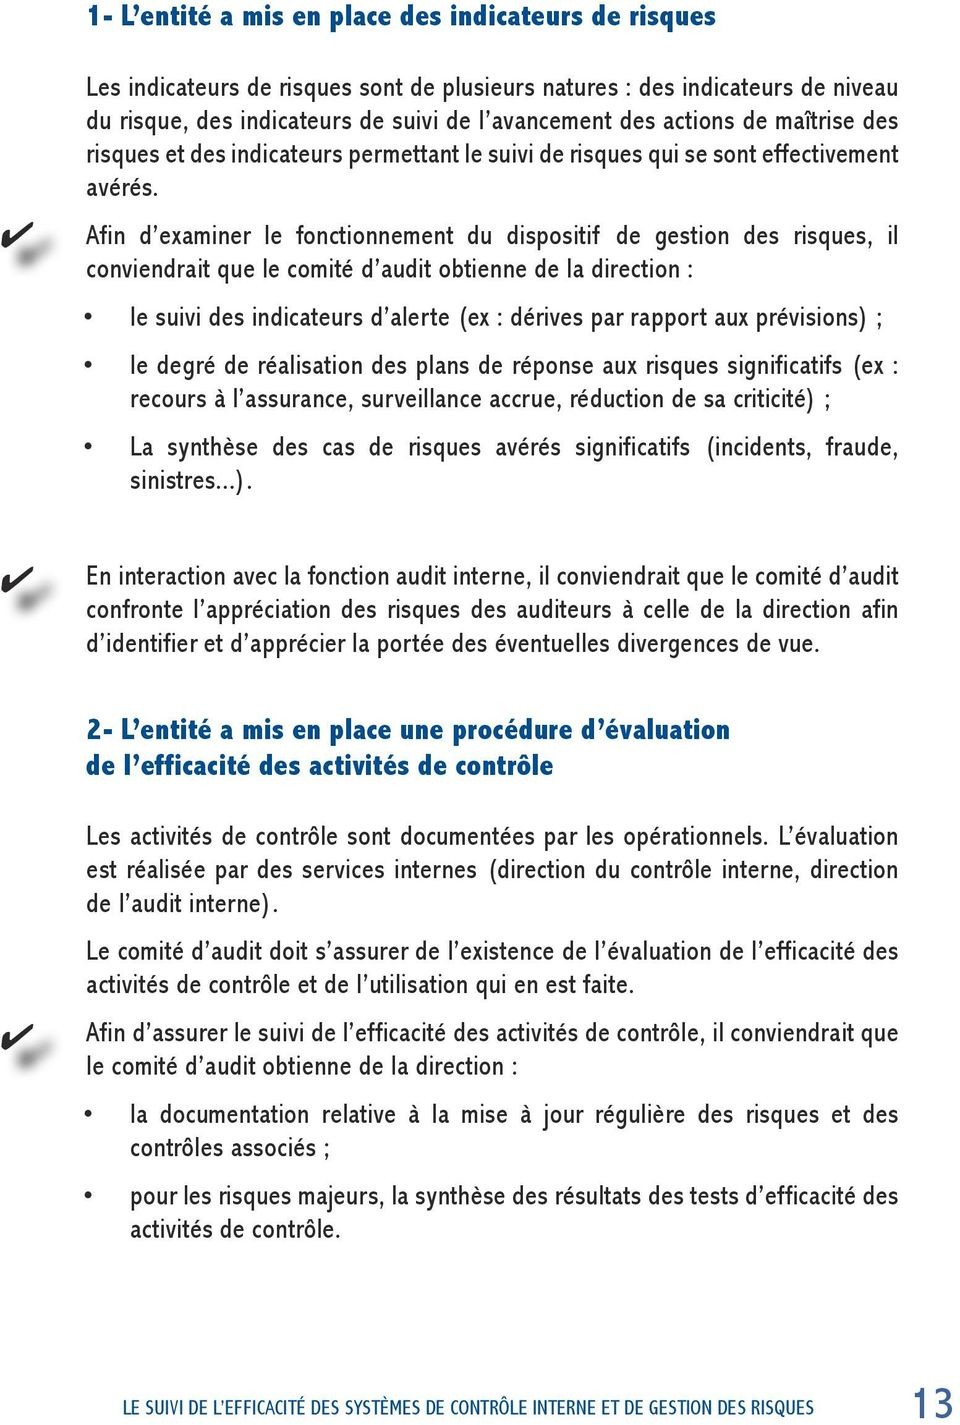 Afin d examiner le fonctionnement du dispositif de gestion des risques, il conviendrait que le comité d audit obtienne de la direction : le suivi des indicateurs d alerte (ex : dérives par rapport